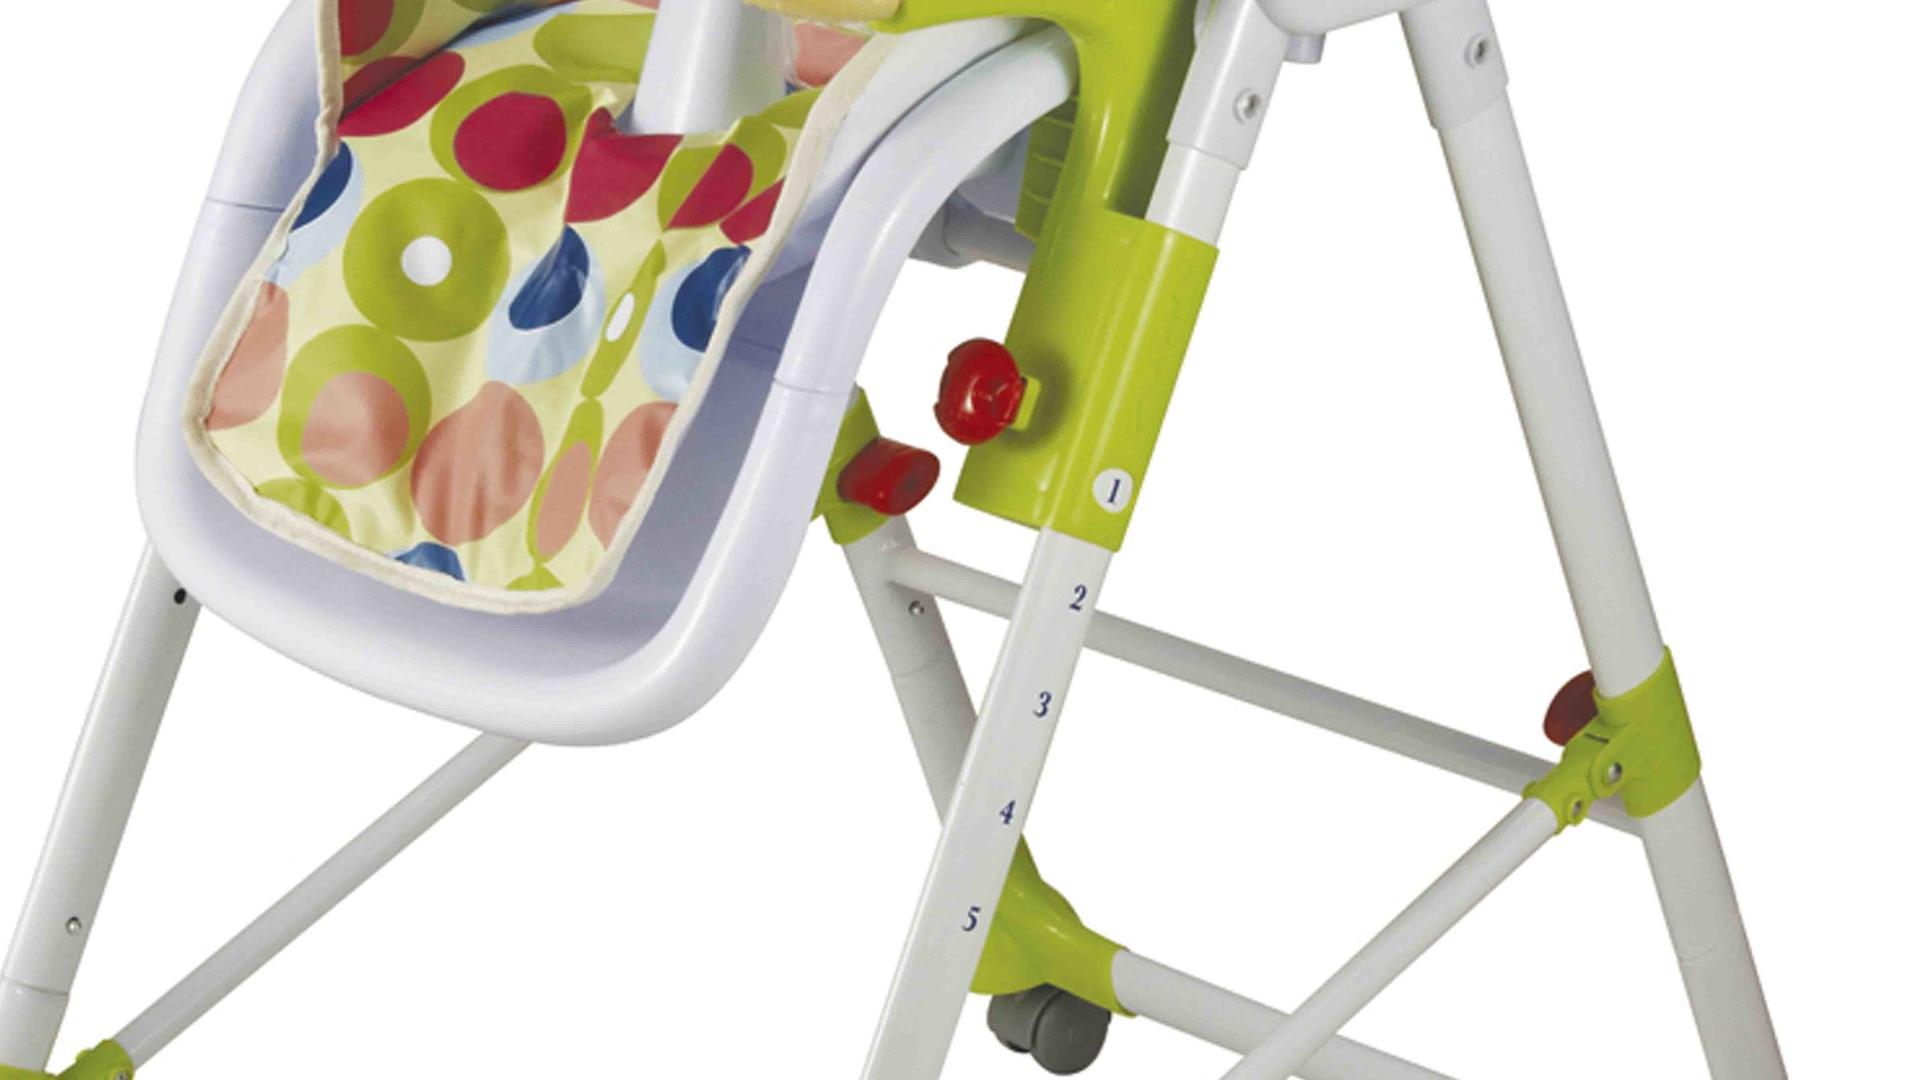 designed metal stable high chair price Aoqi manufacture